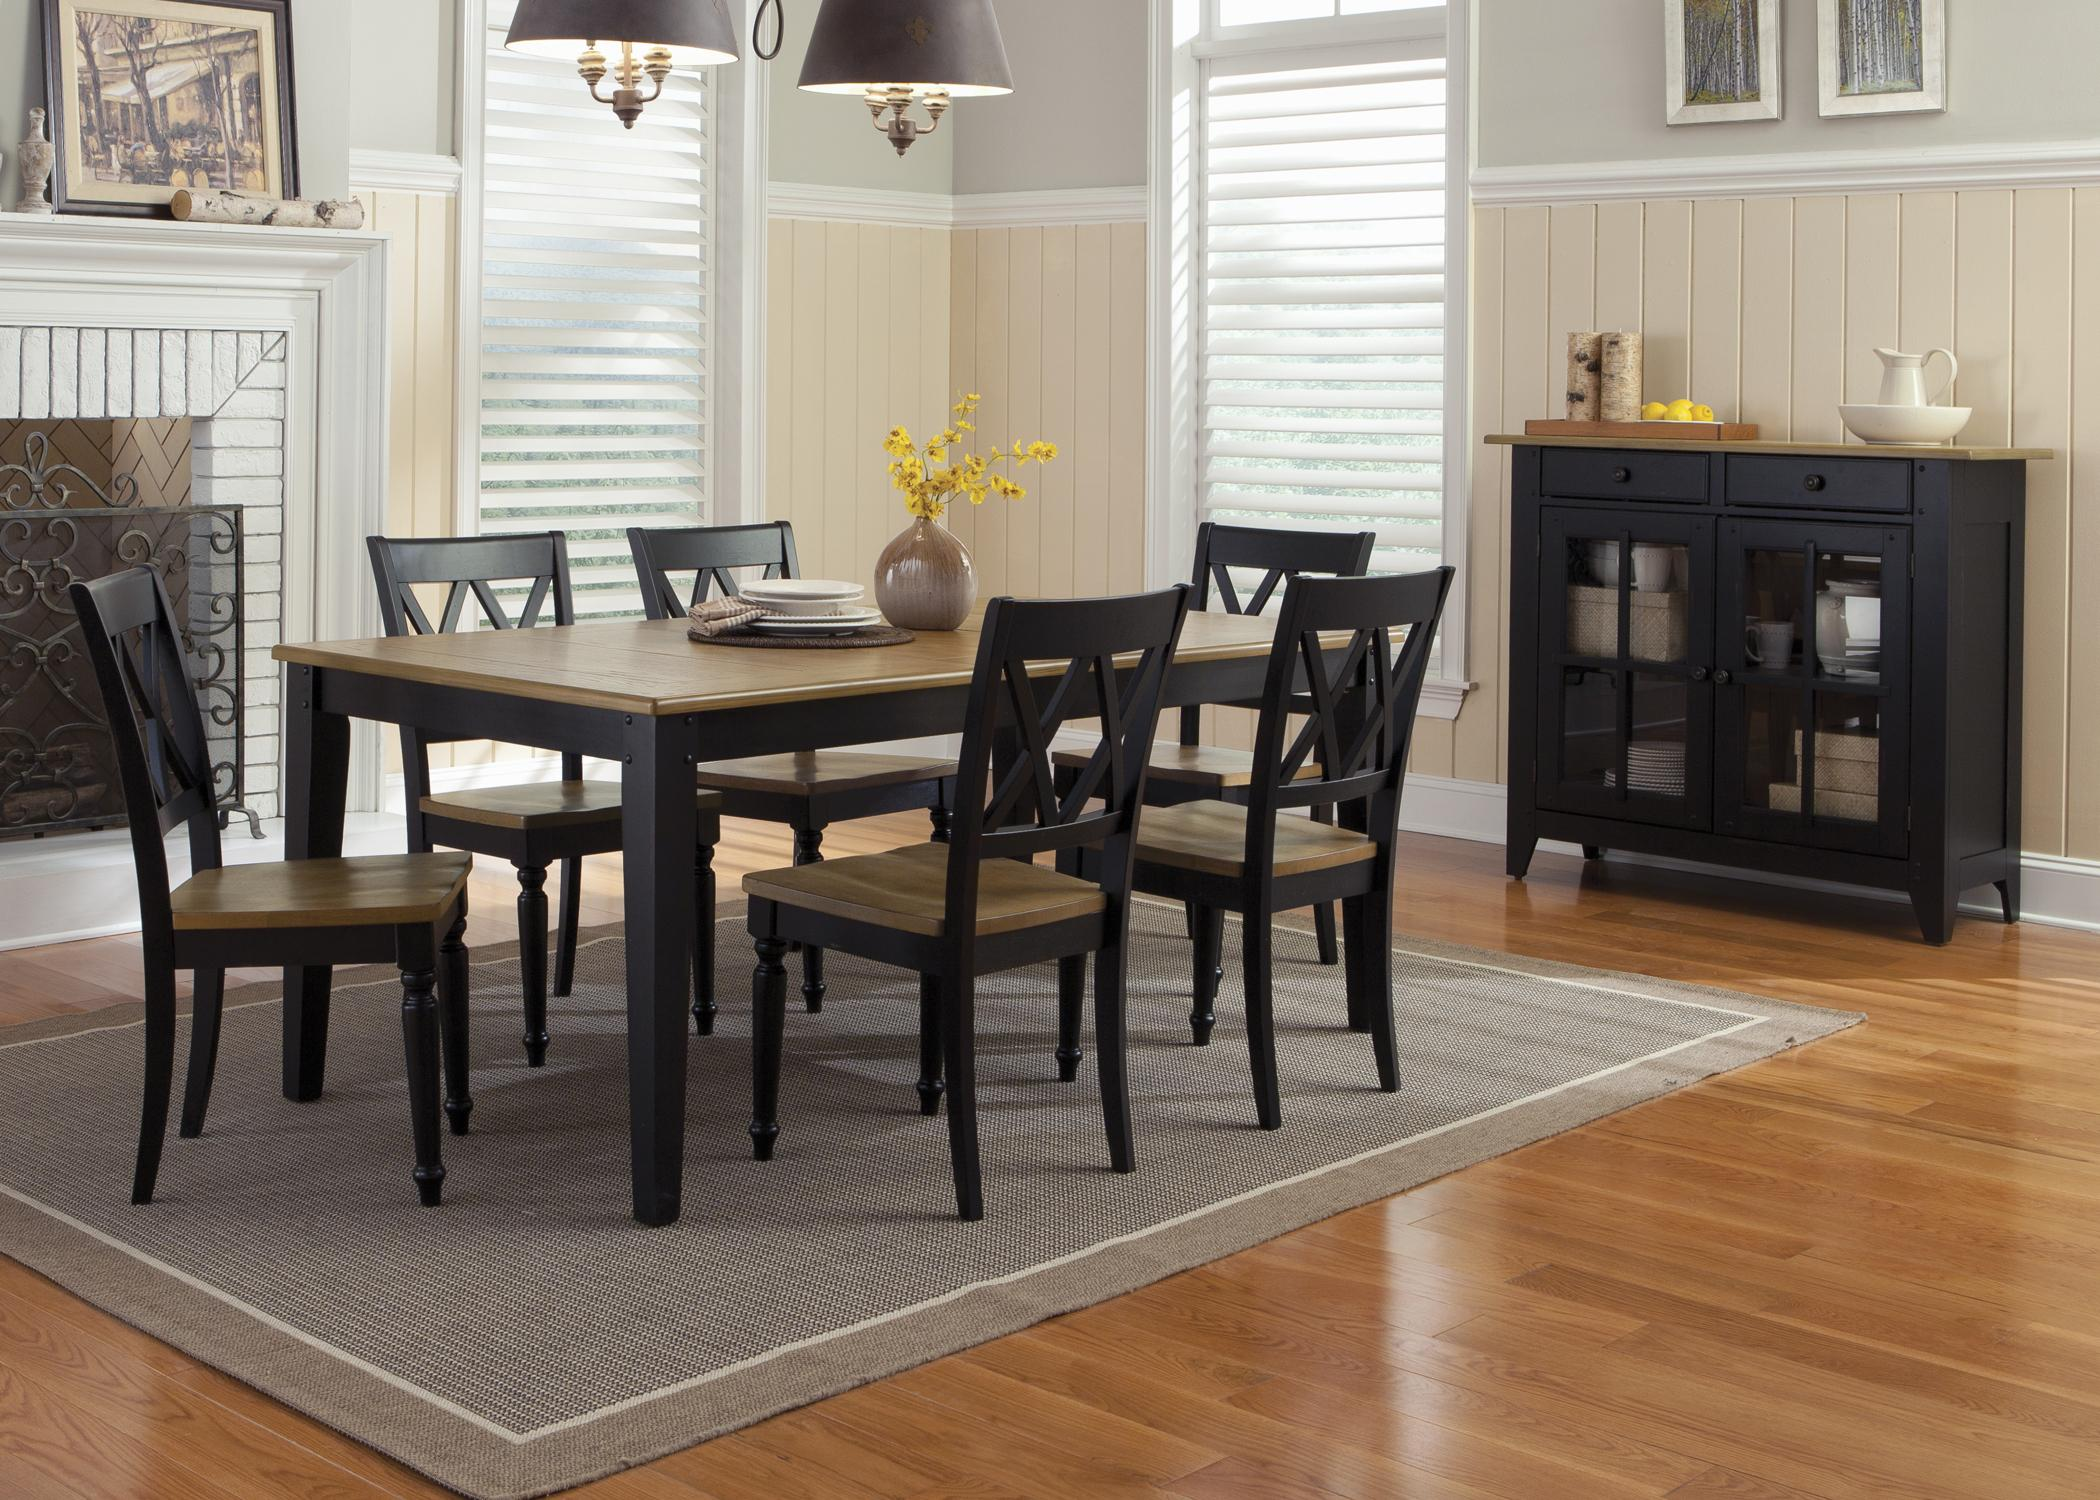 Al Fresco II Dining Room Group 2 by Liberty Furniture at Lapeer Furniture & Mattress Center